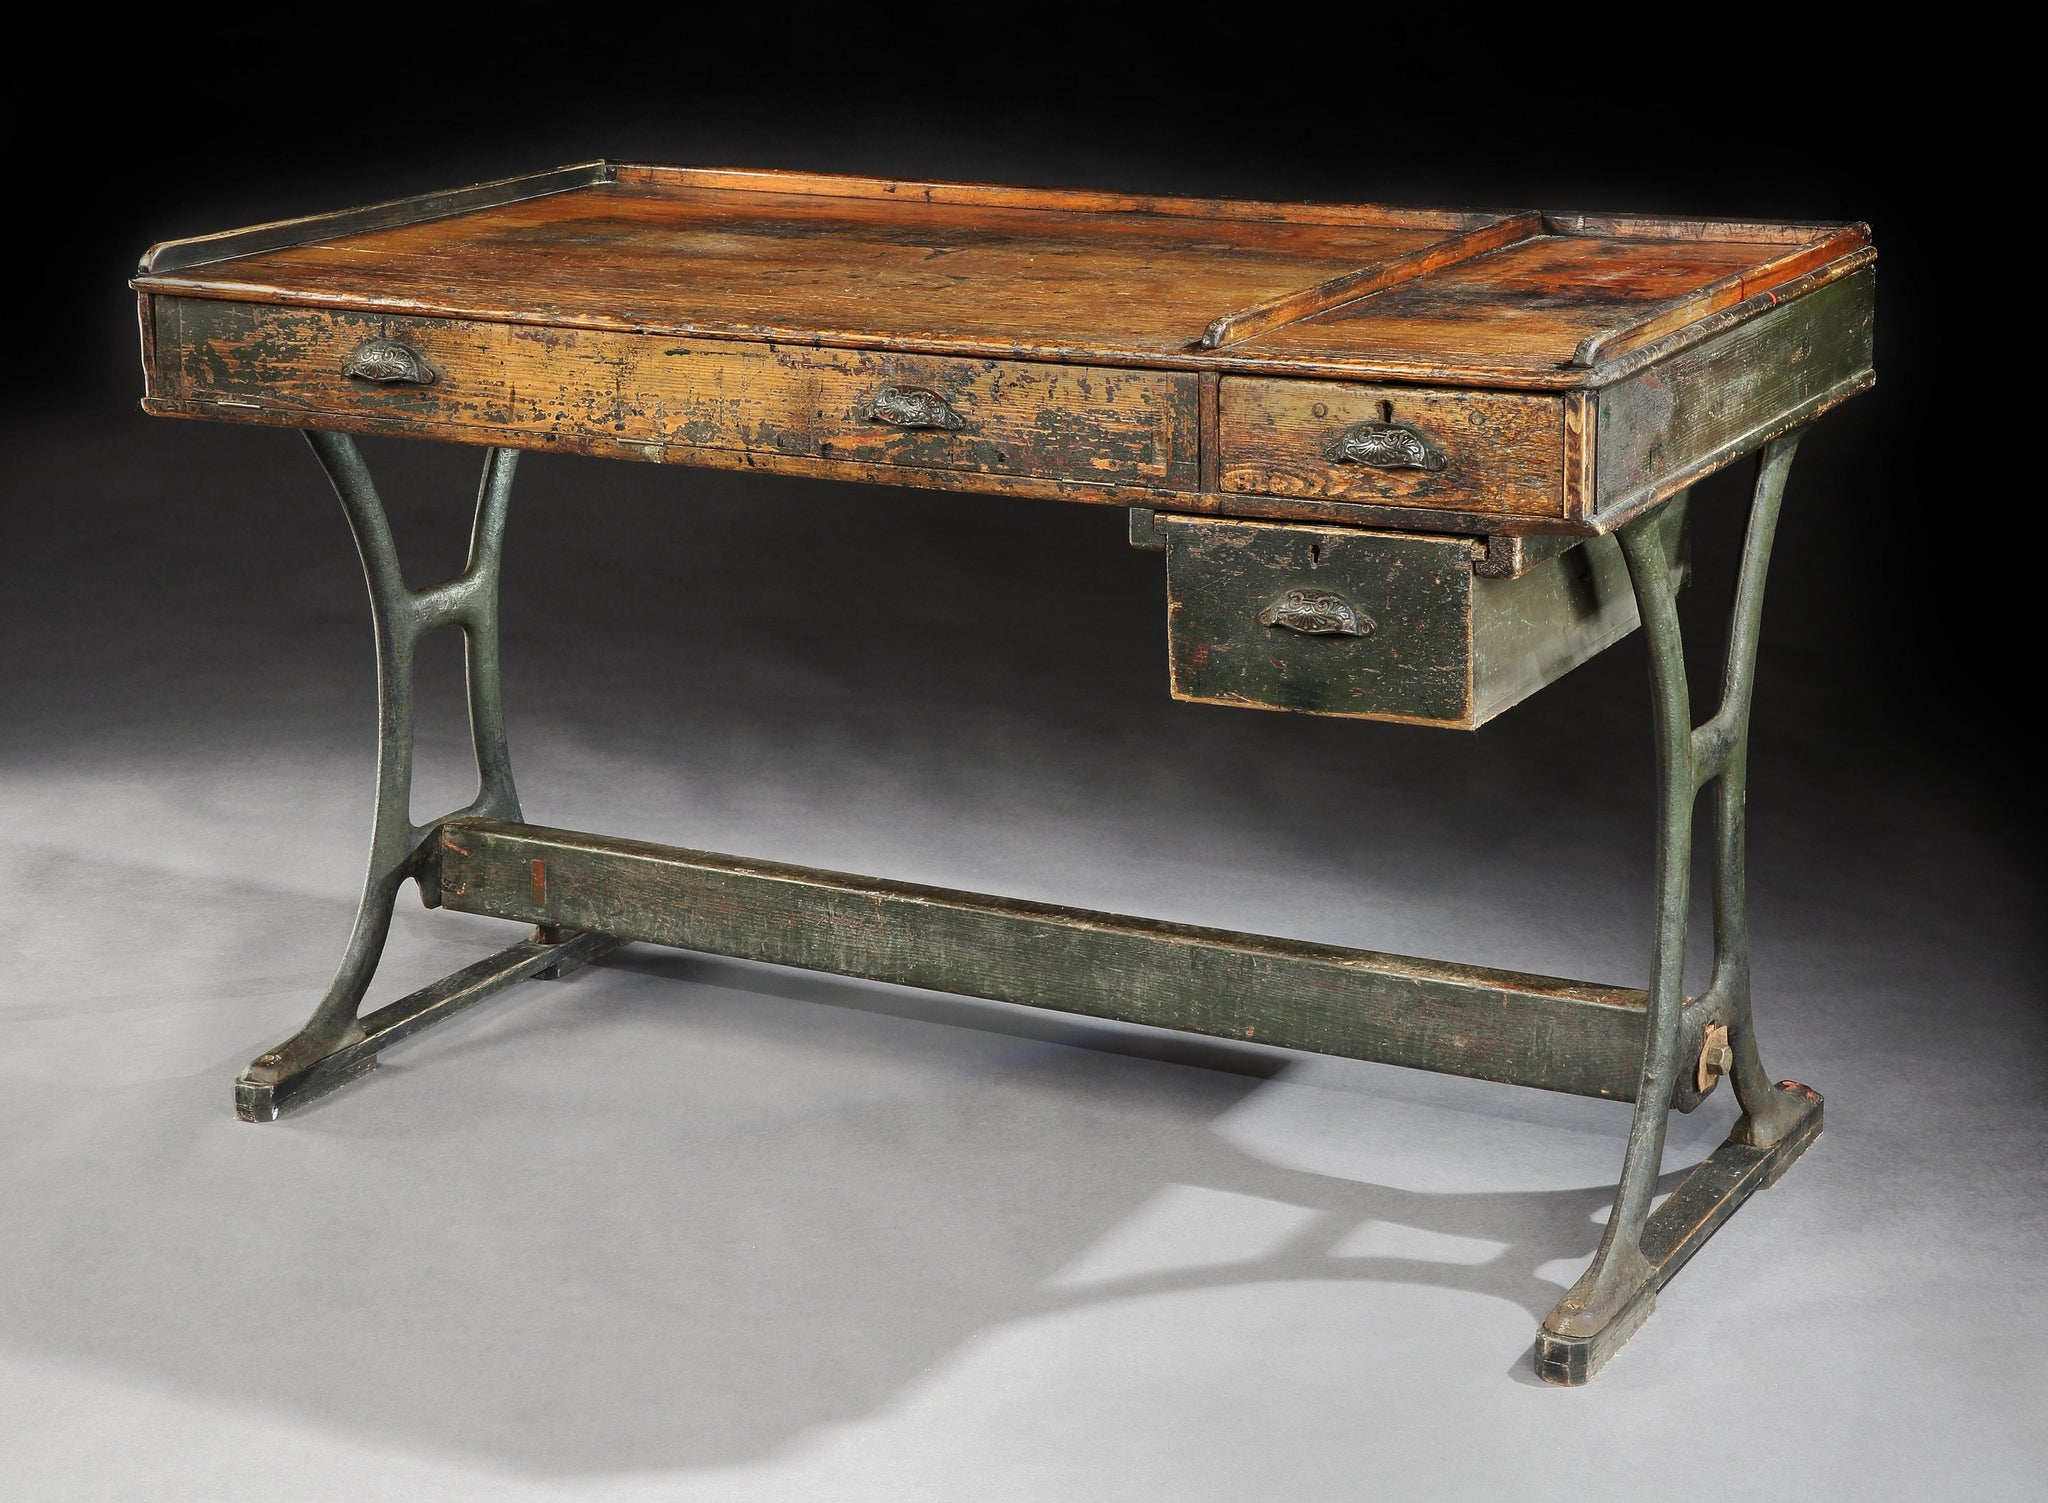 Rare Industrial Style Desk or Worktable